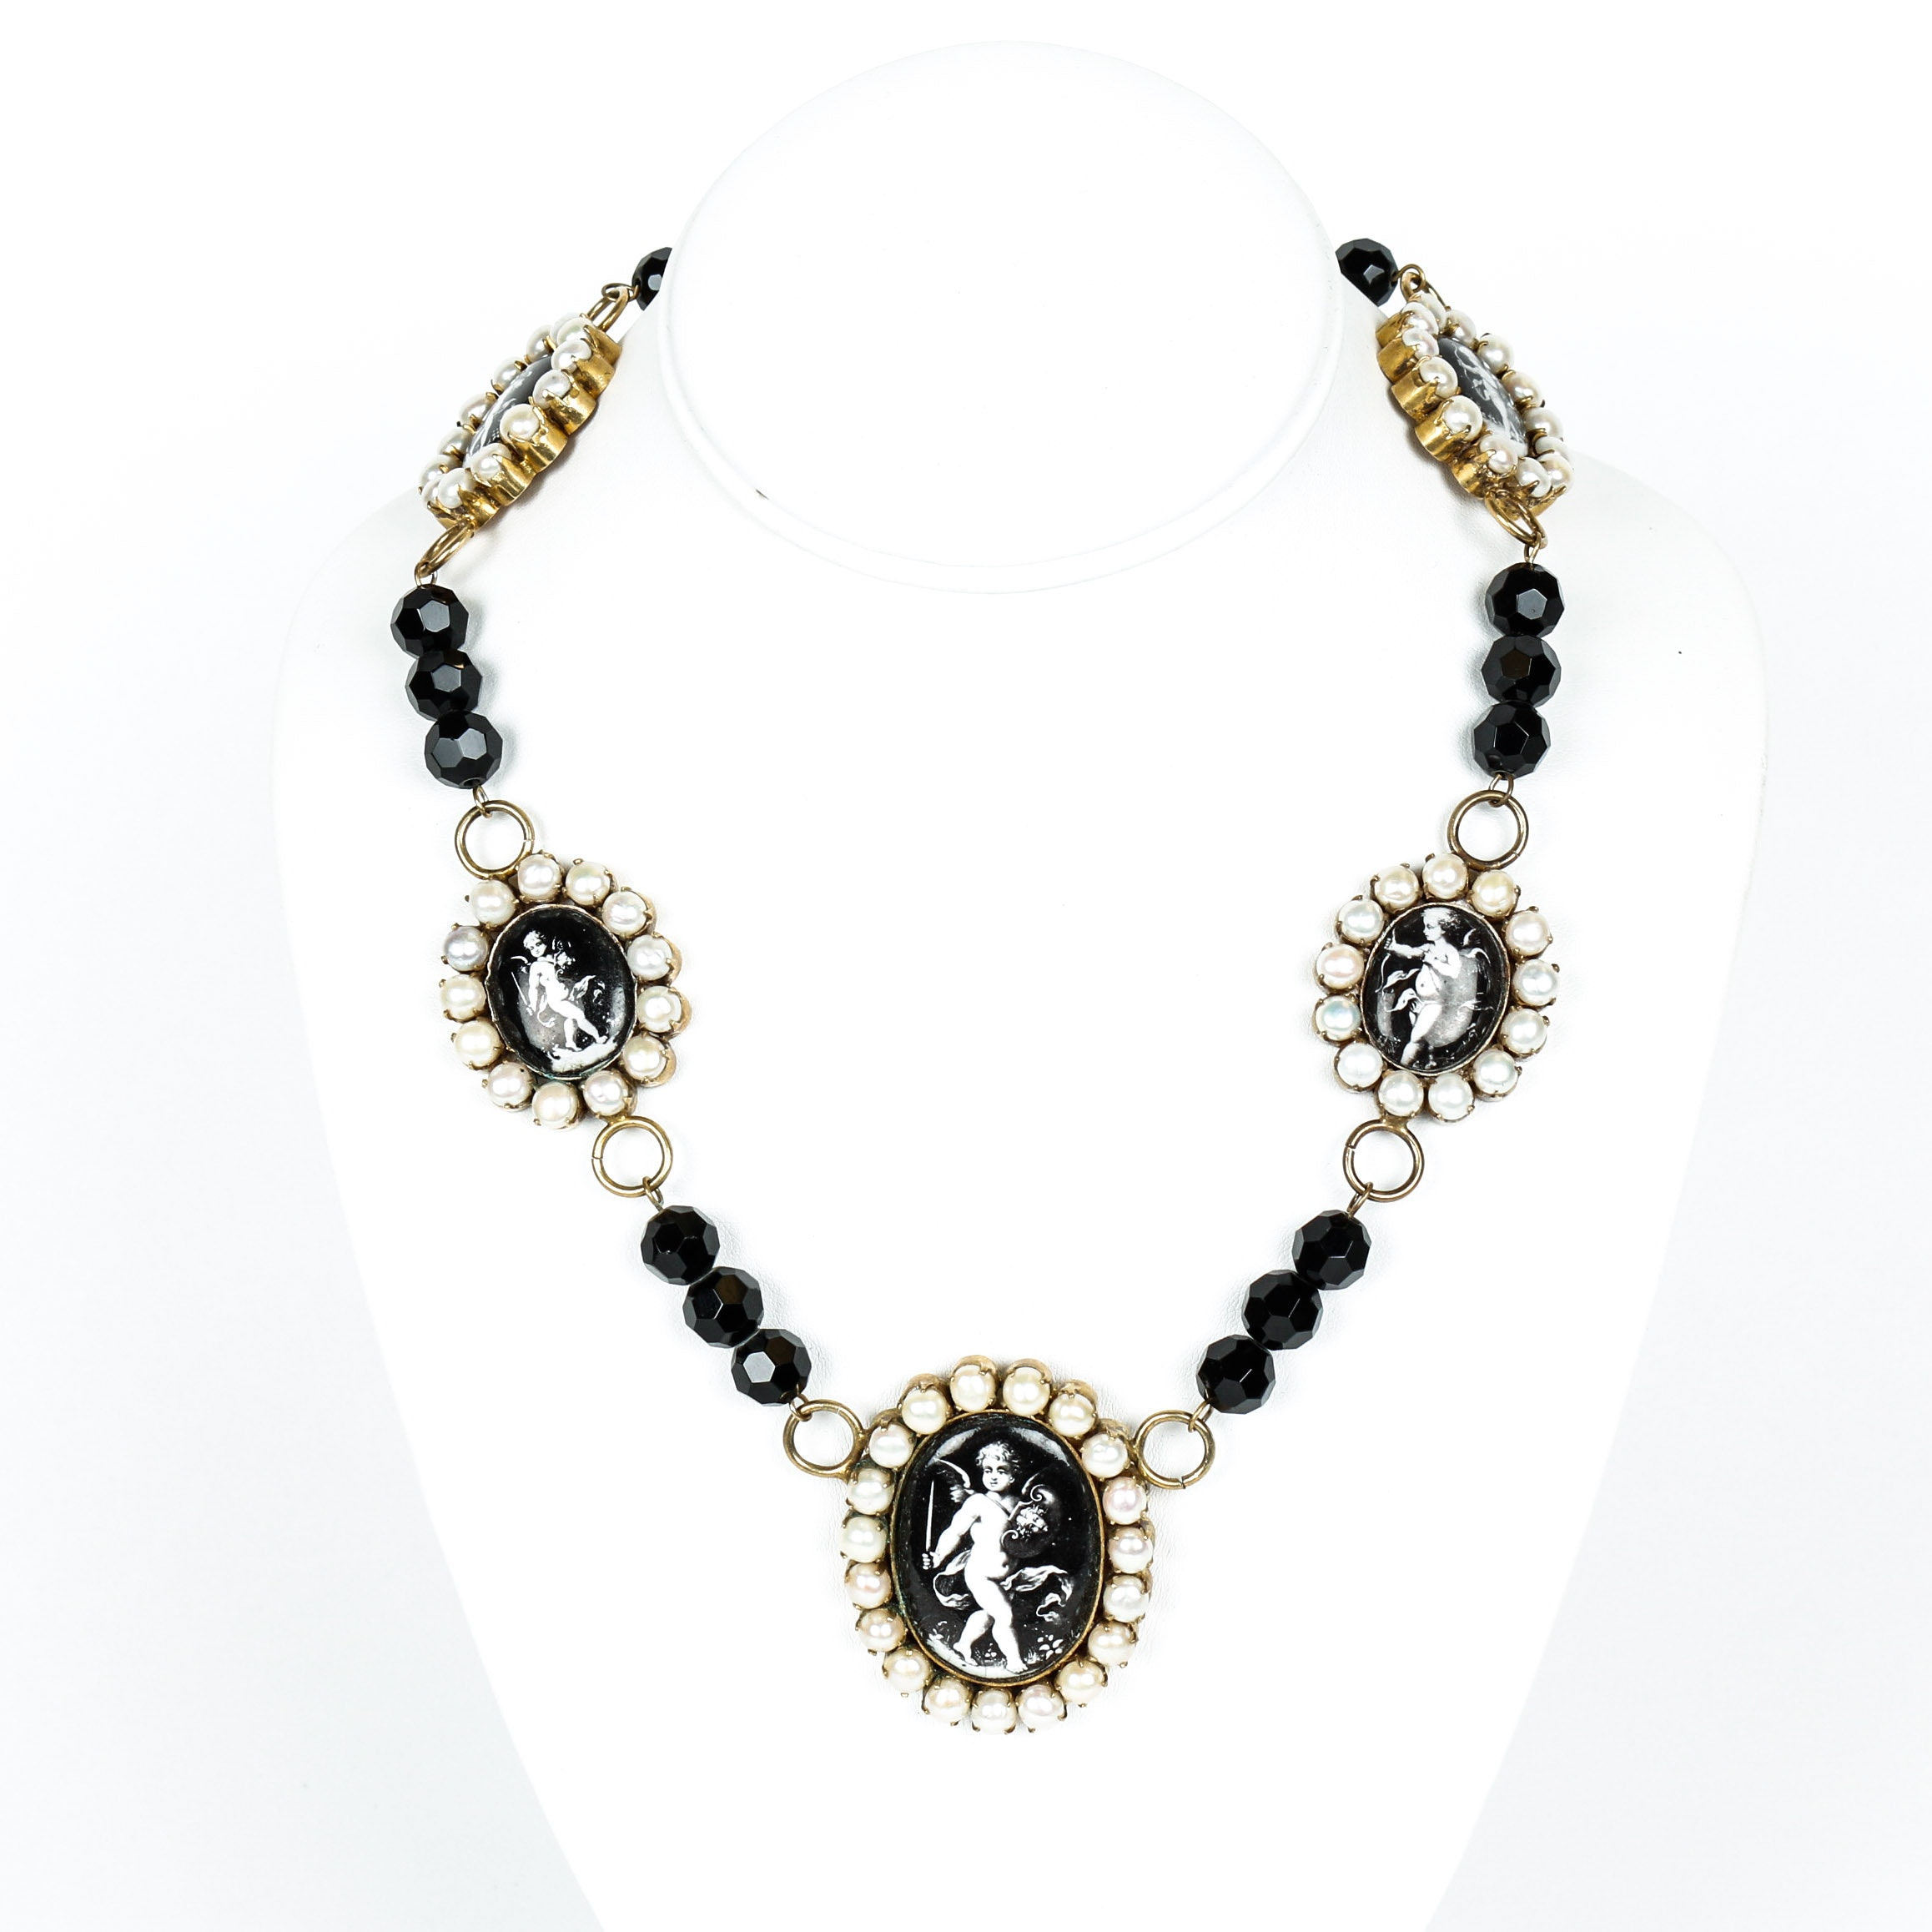 Vintage Black Onyx, Cultured Pearl, Enamel and Vermeil Necklace